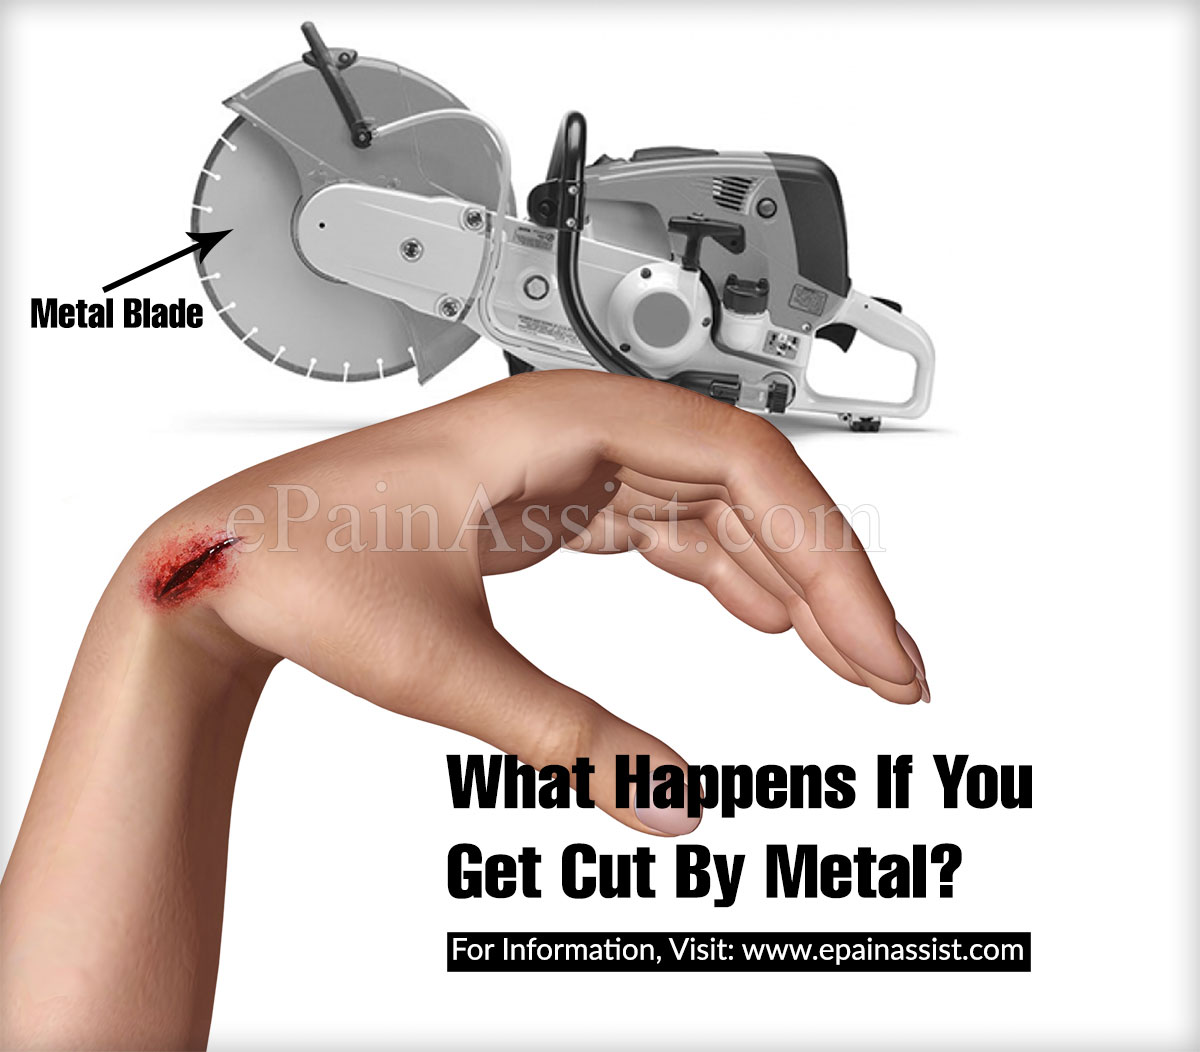 What Happens If You Get Cut By Metal?